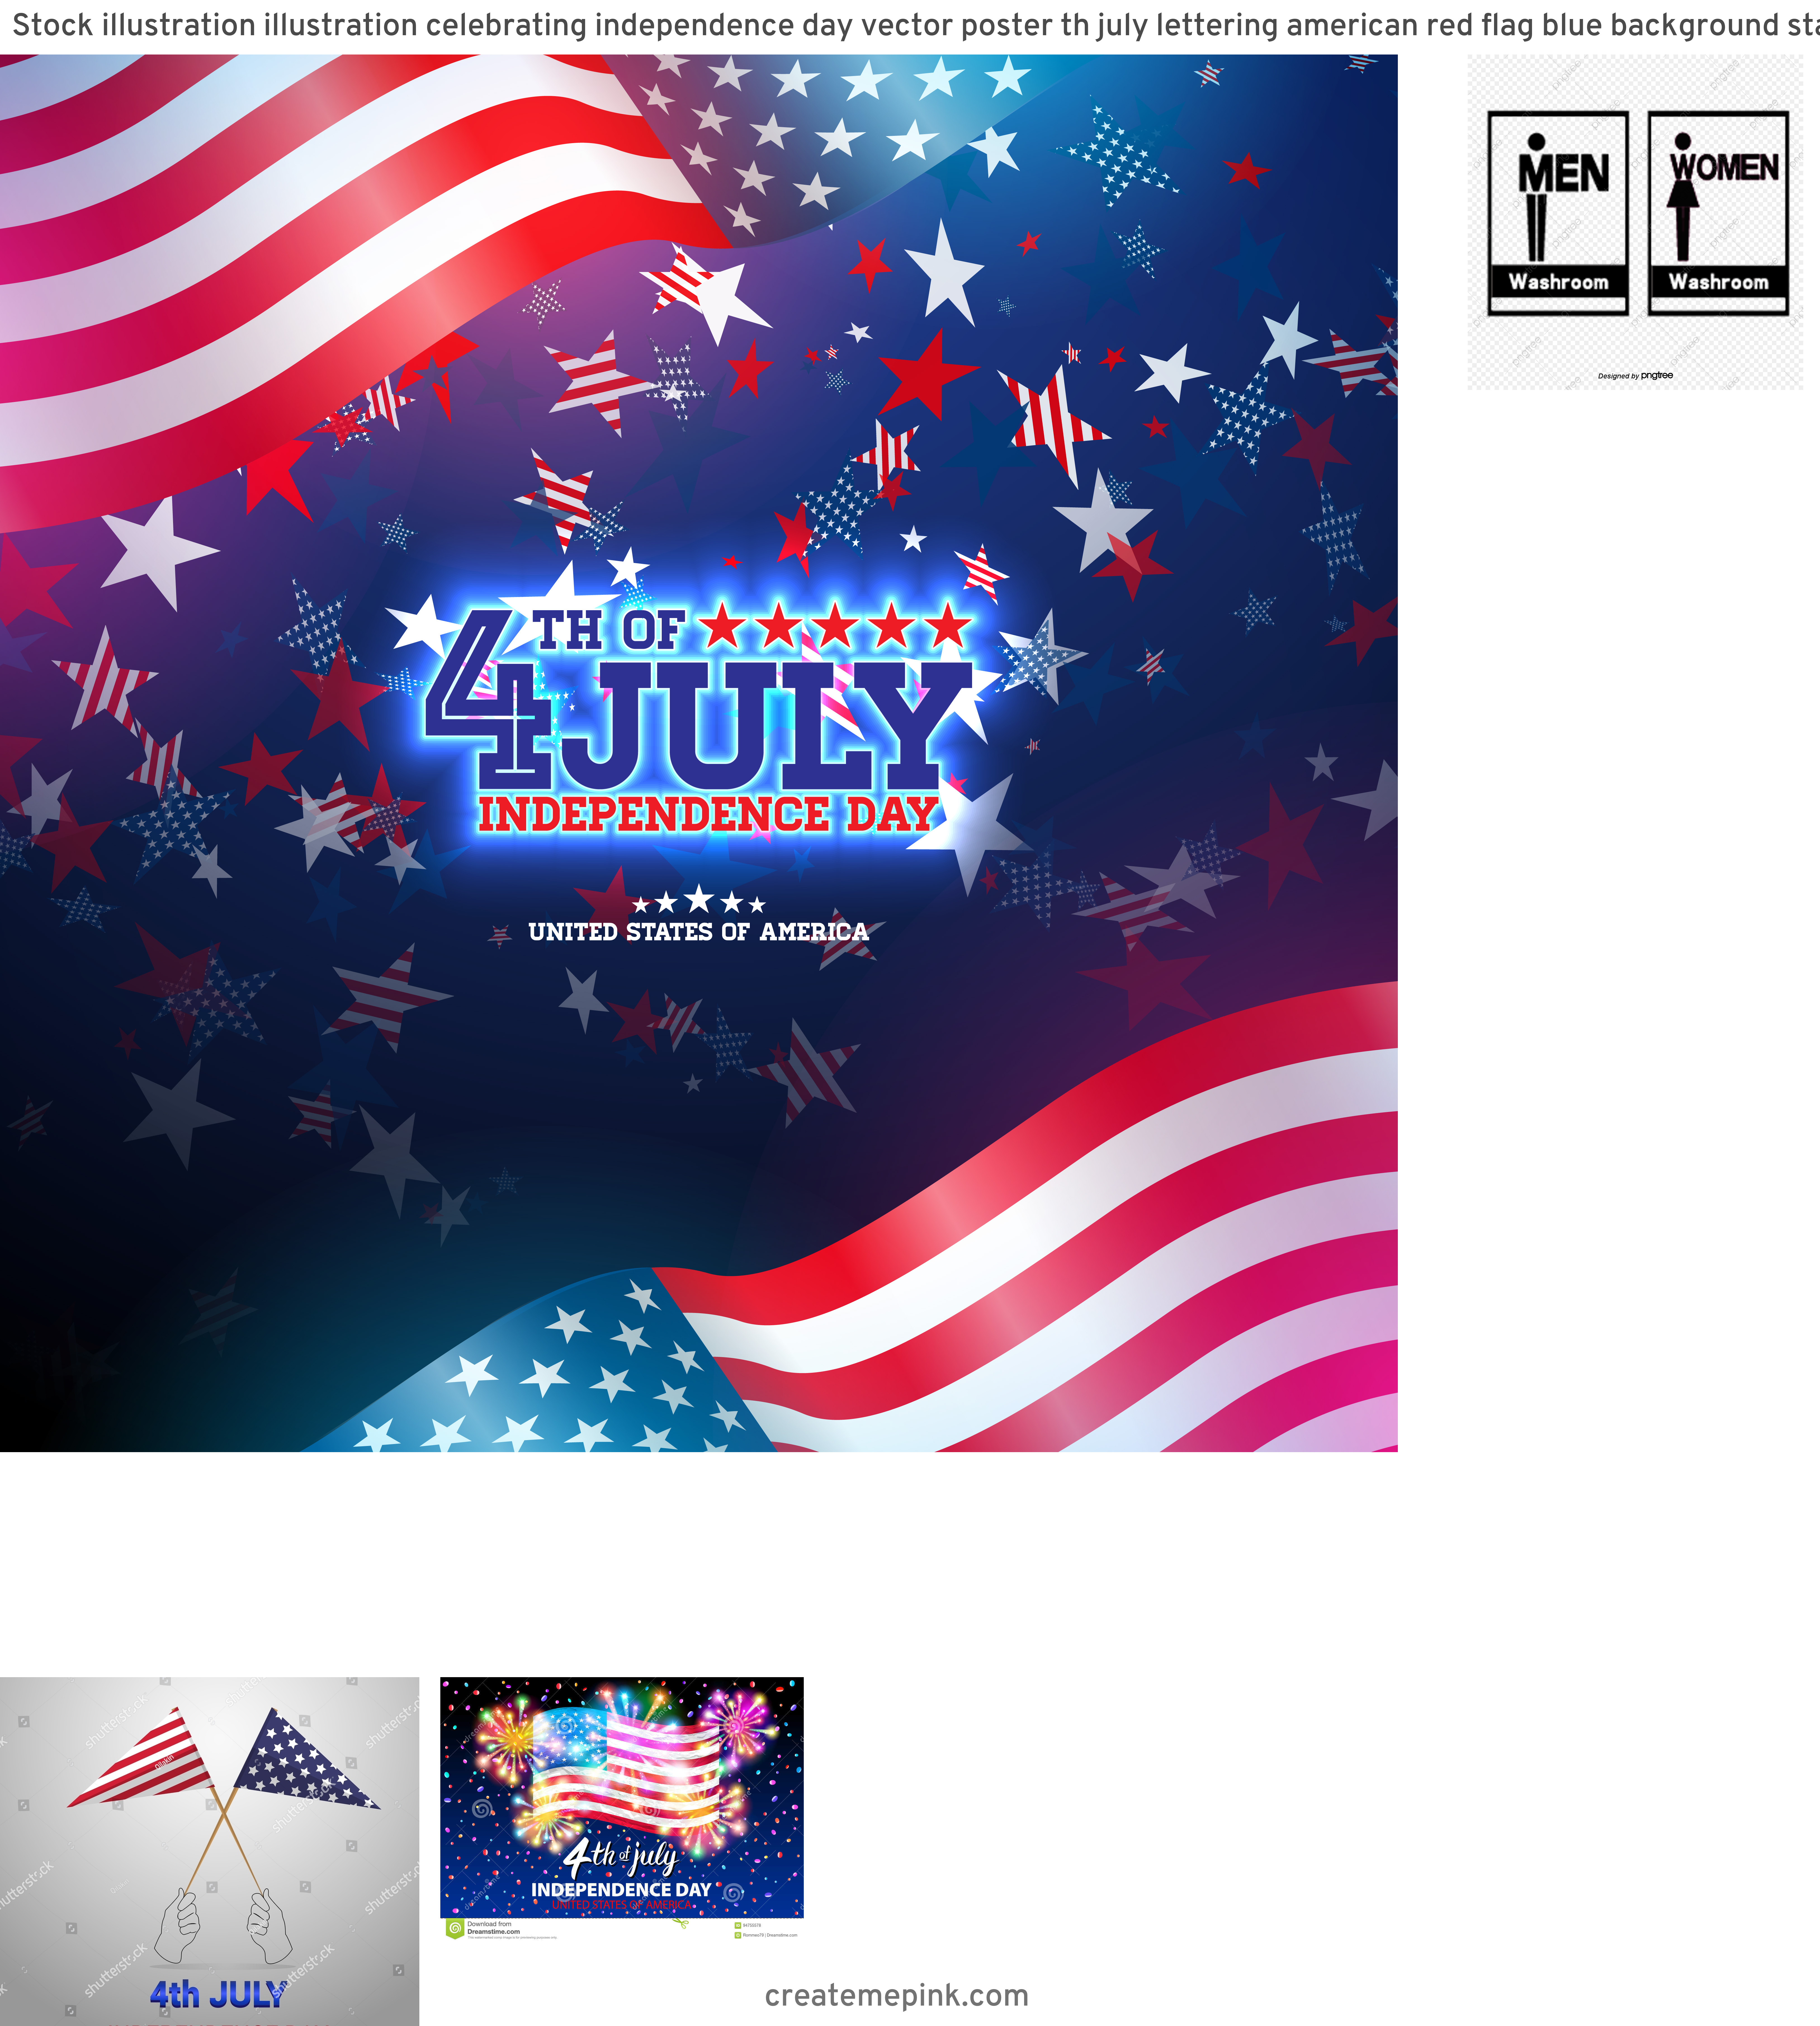 4th Of July Vectors For Men's: Stock Illustration Illustration Celebrating Independence Day Vector Poster Th July Lettering American Red Flag Blue Background Sta Image